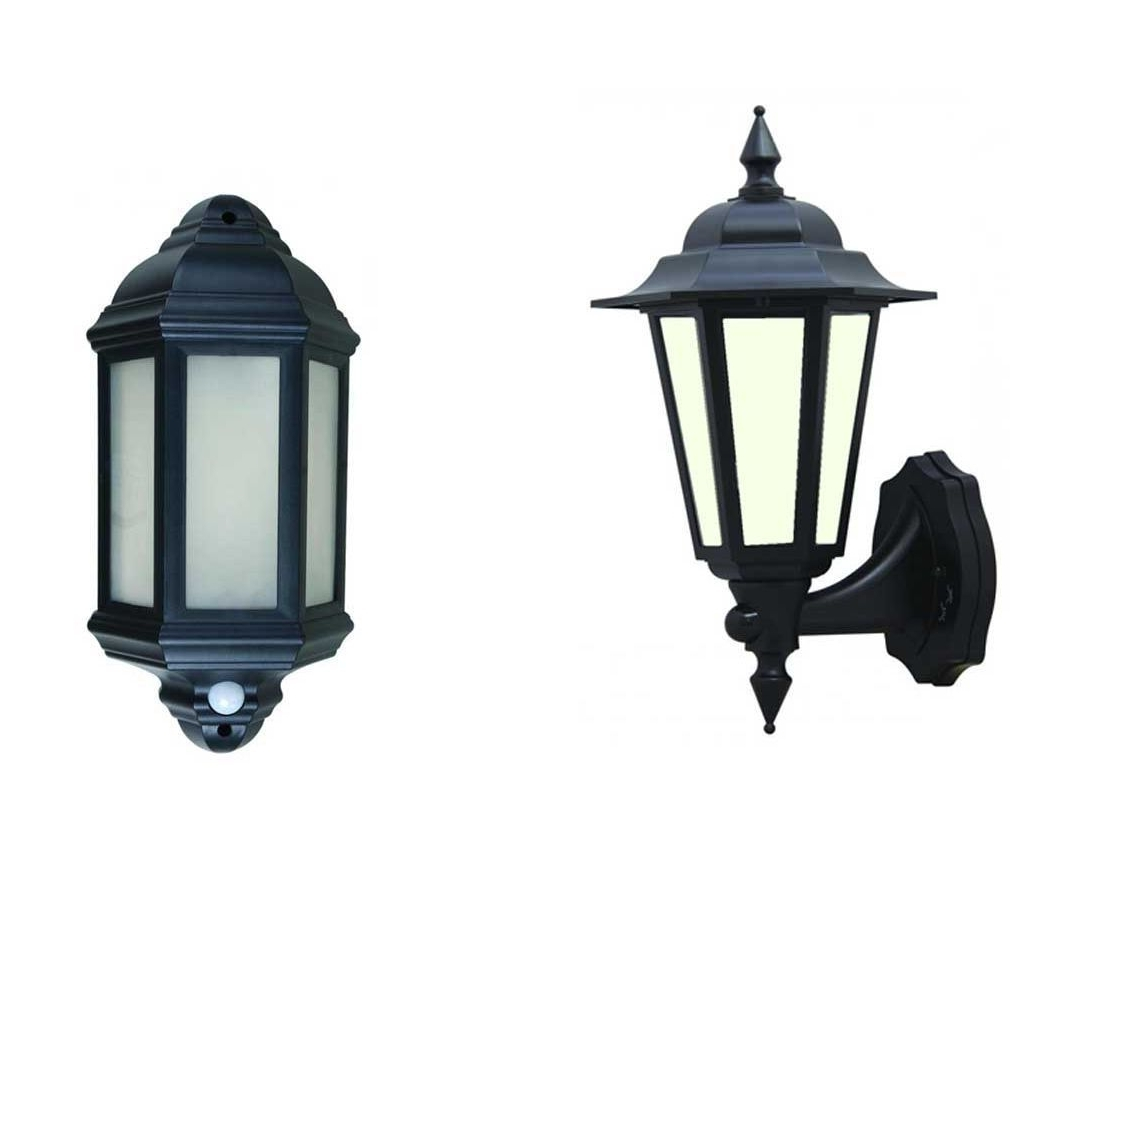 60W Traditional Black Half Lantern Outdoor Garden Wall Light With With 2018 Half Lantern Outside Wall Lights (Gallery 4 of 20)